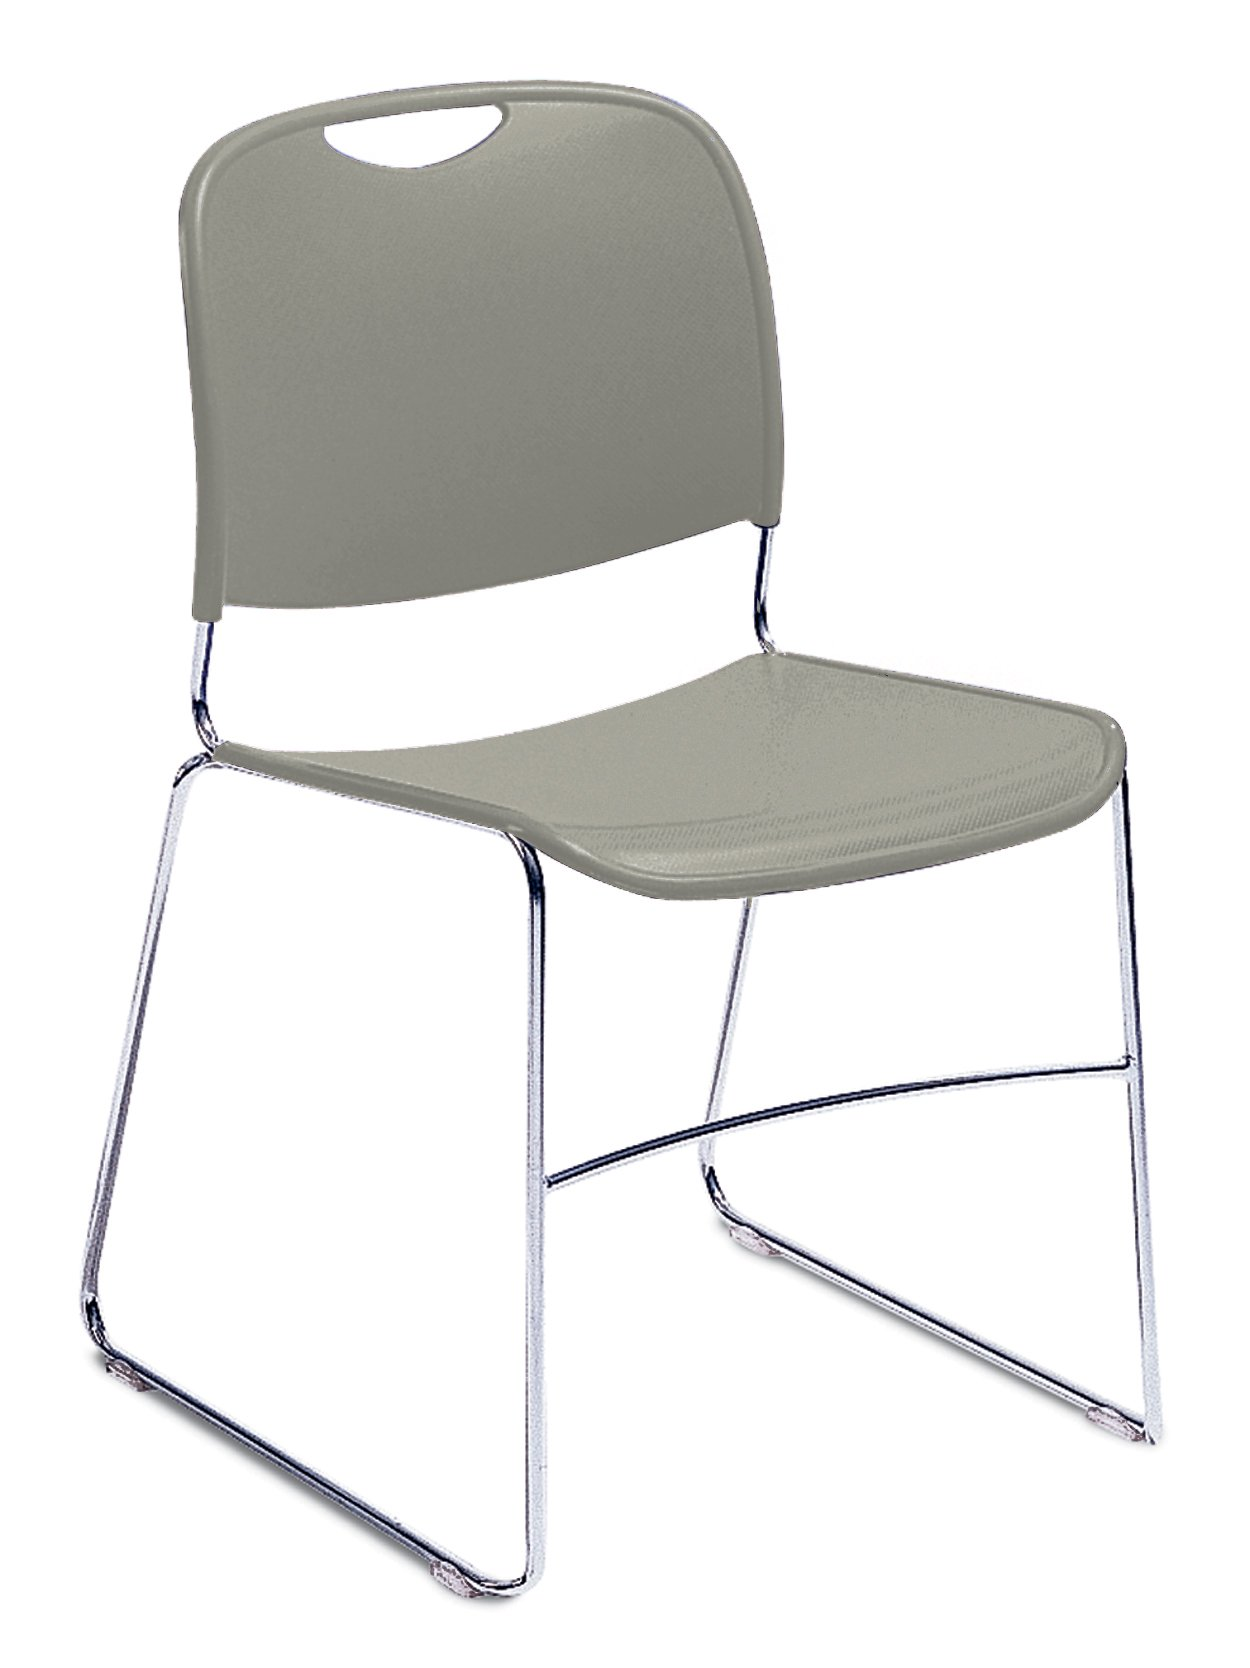 NPS 8502-CN Ultra-compact Plastic Stack Chair, 300-lb Weight Capacity, 17-1/2'' Length x 22-1/2'' Width x 31'' Height, Grey (Carton of 4)